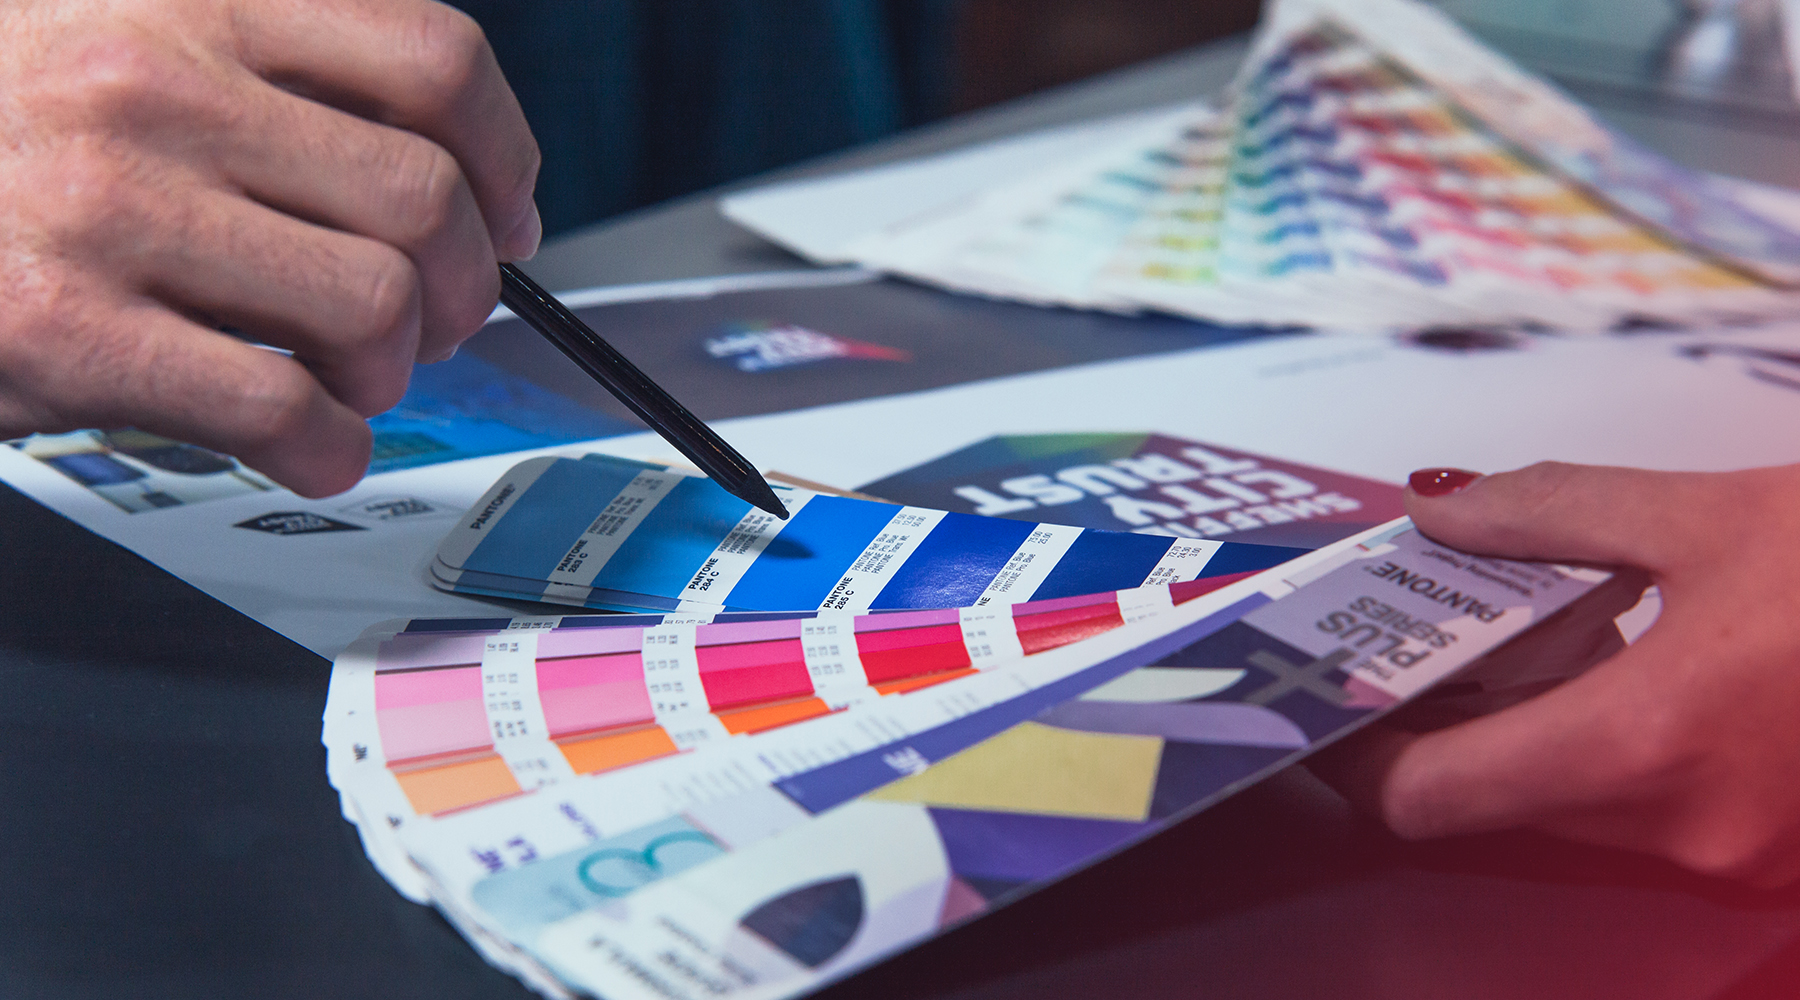 Discussing colour swatches